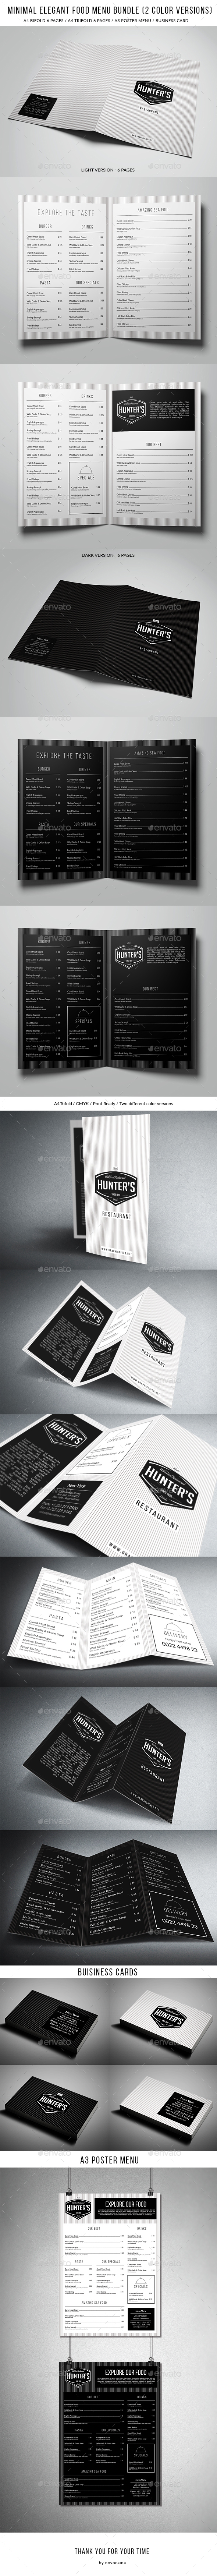 Minimal Elegant Food Menu Bundle (2 versions) - Food Menus Print Templates